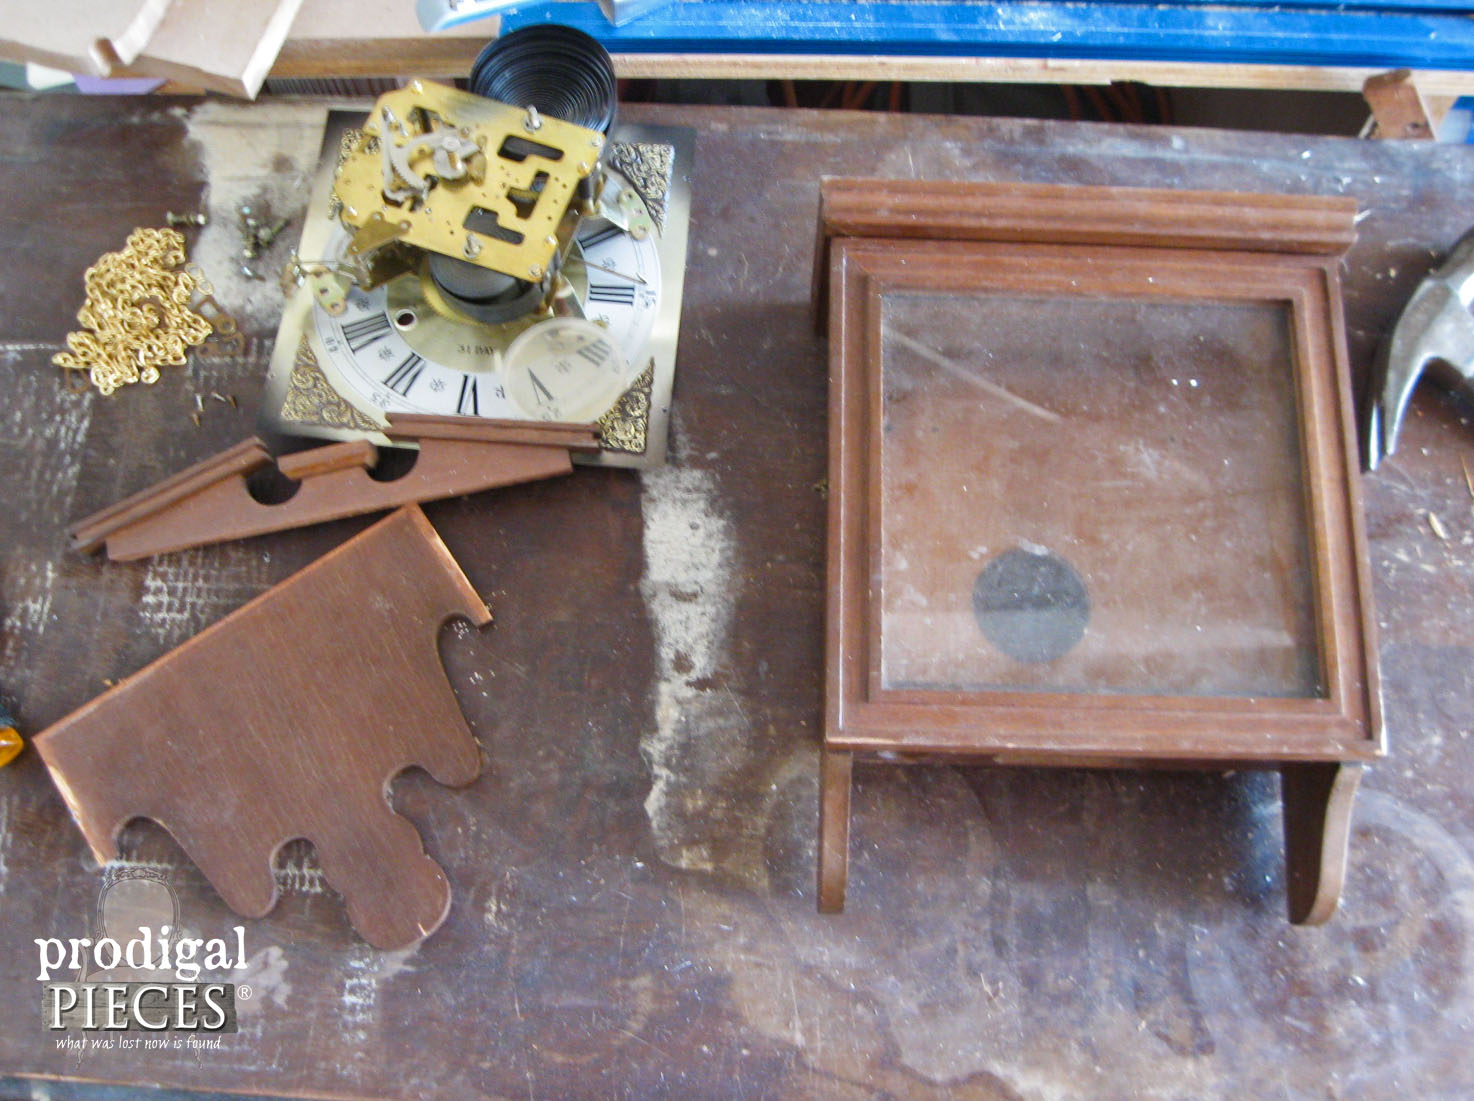 Gutted Vintage Clock for Repurposed Swiss Medical Kit | Prodigal Pieces | www.prodigalpieces.com